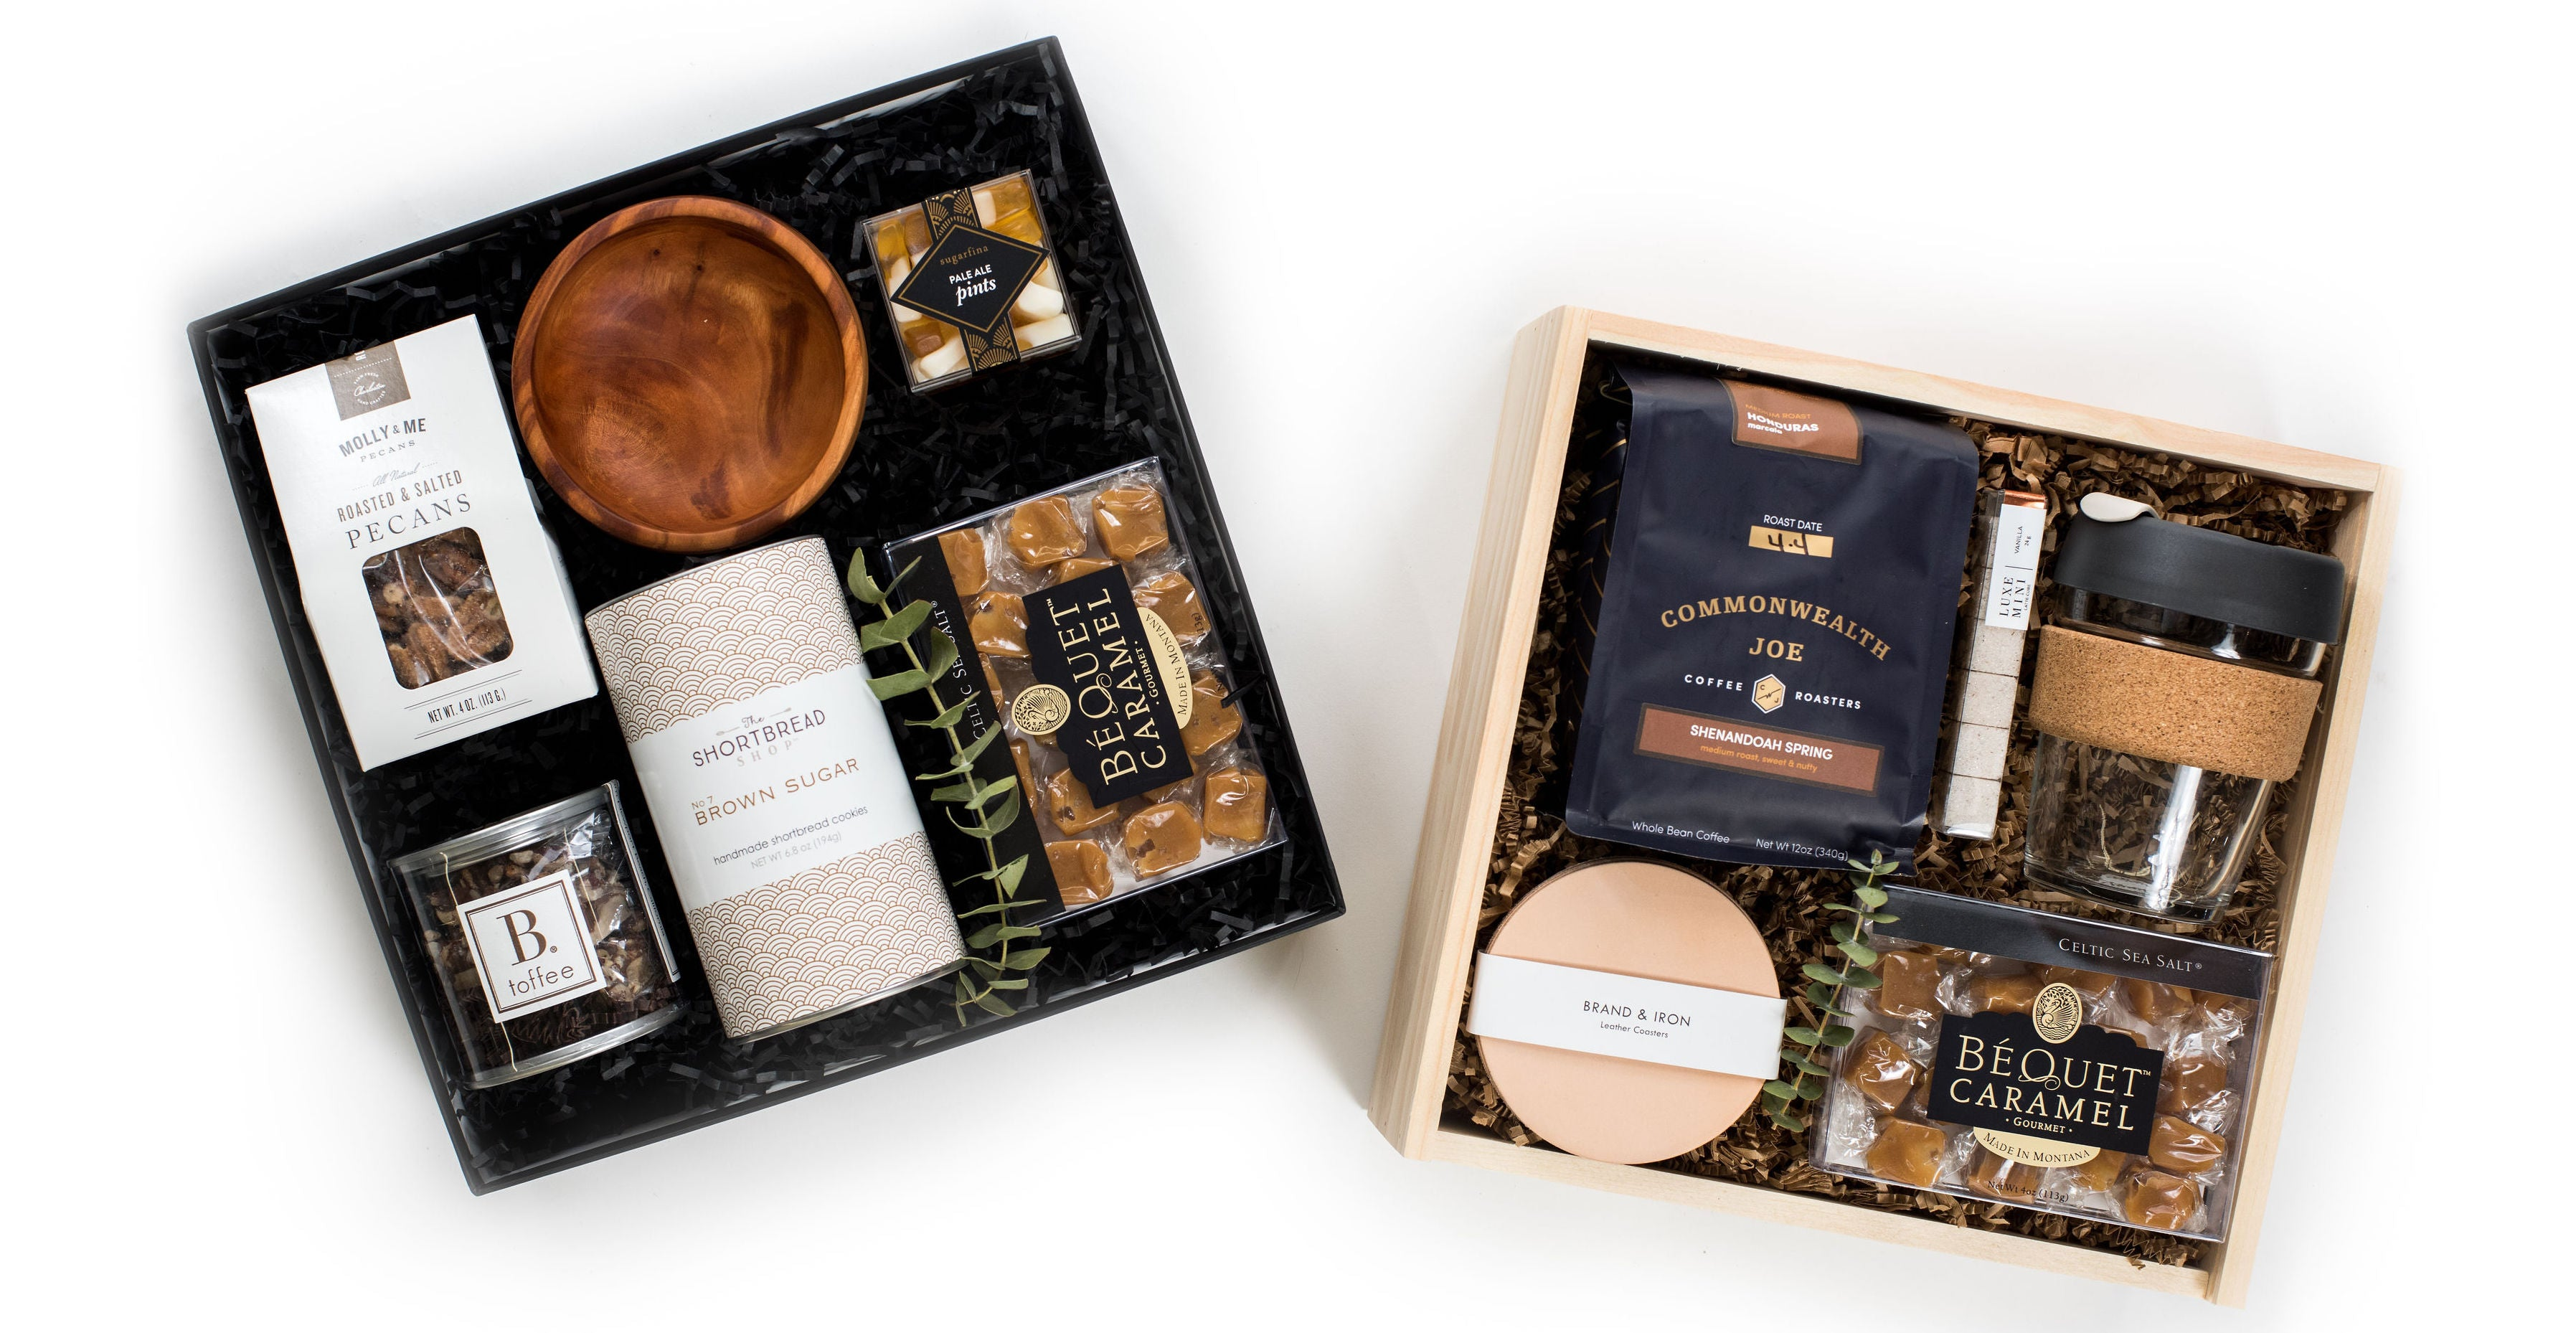 Curated Gift Box Sets For Cabin Fever And Social Distancing By Marigol